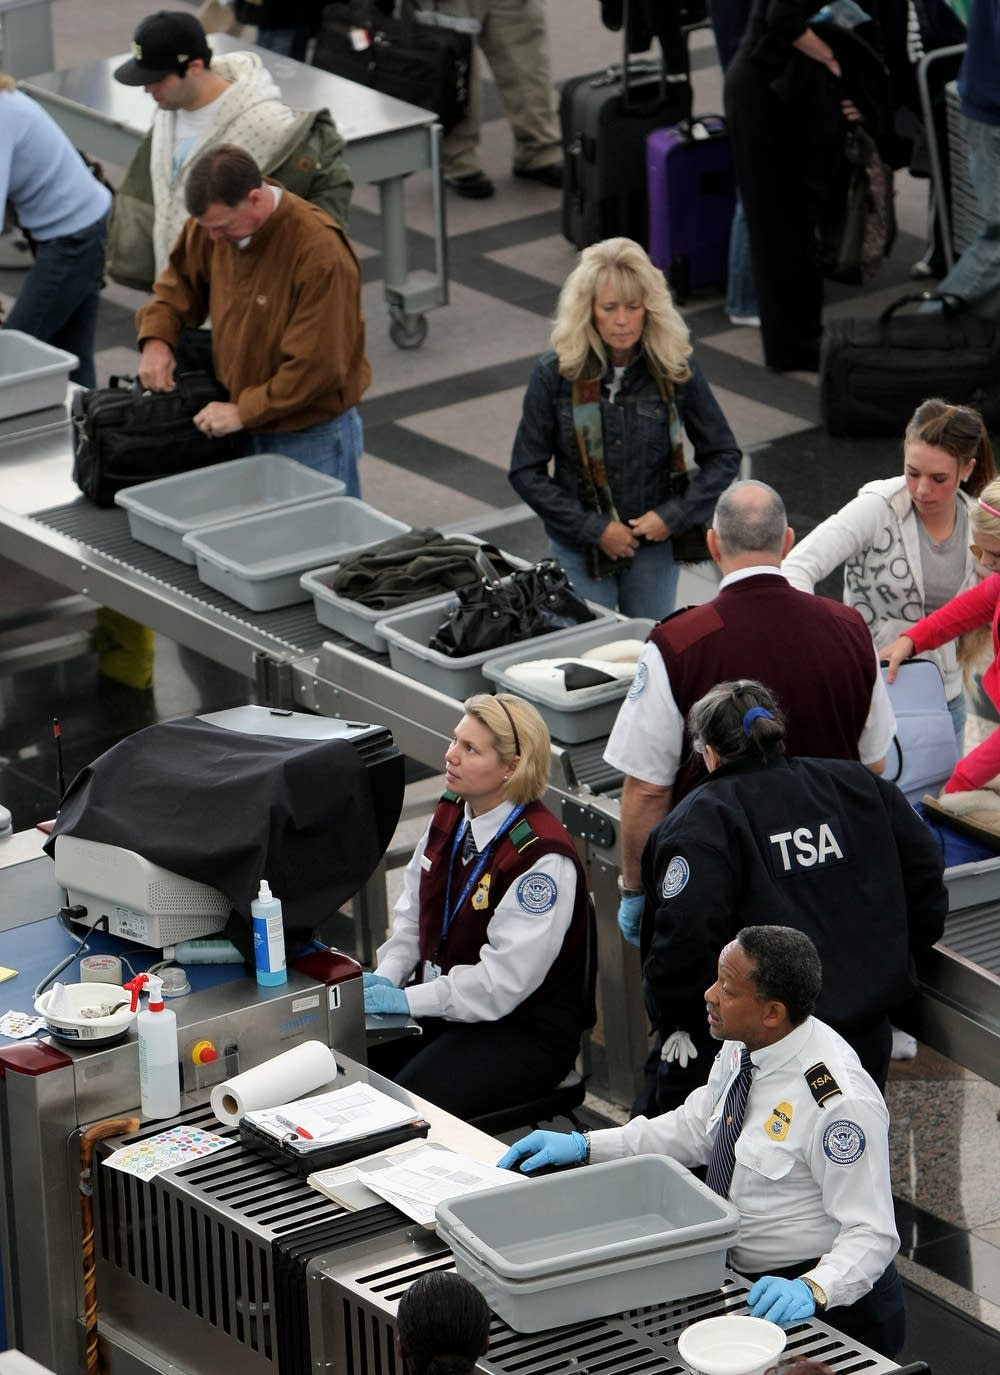 TSA officials conduct security screenings